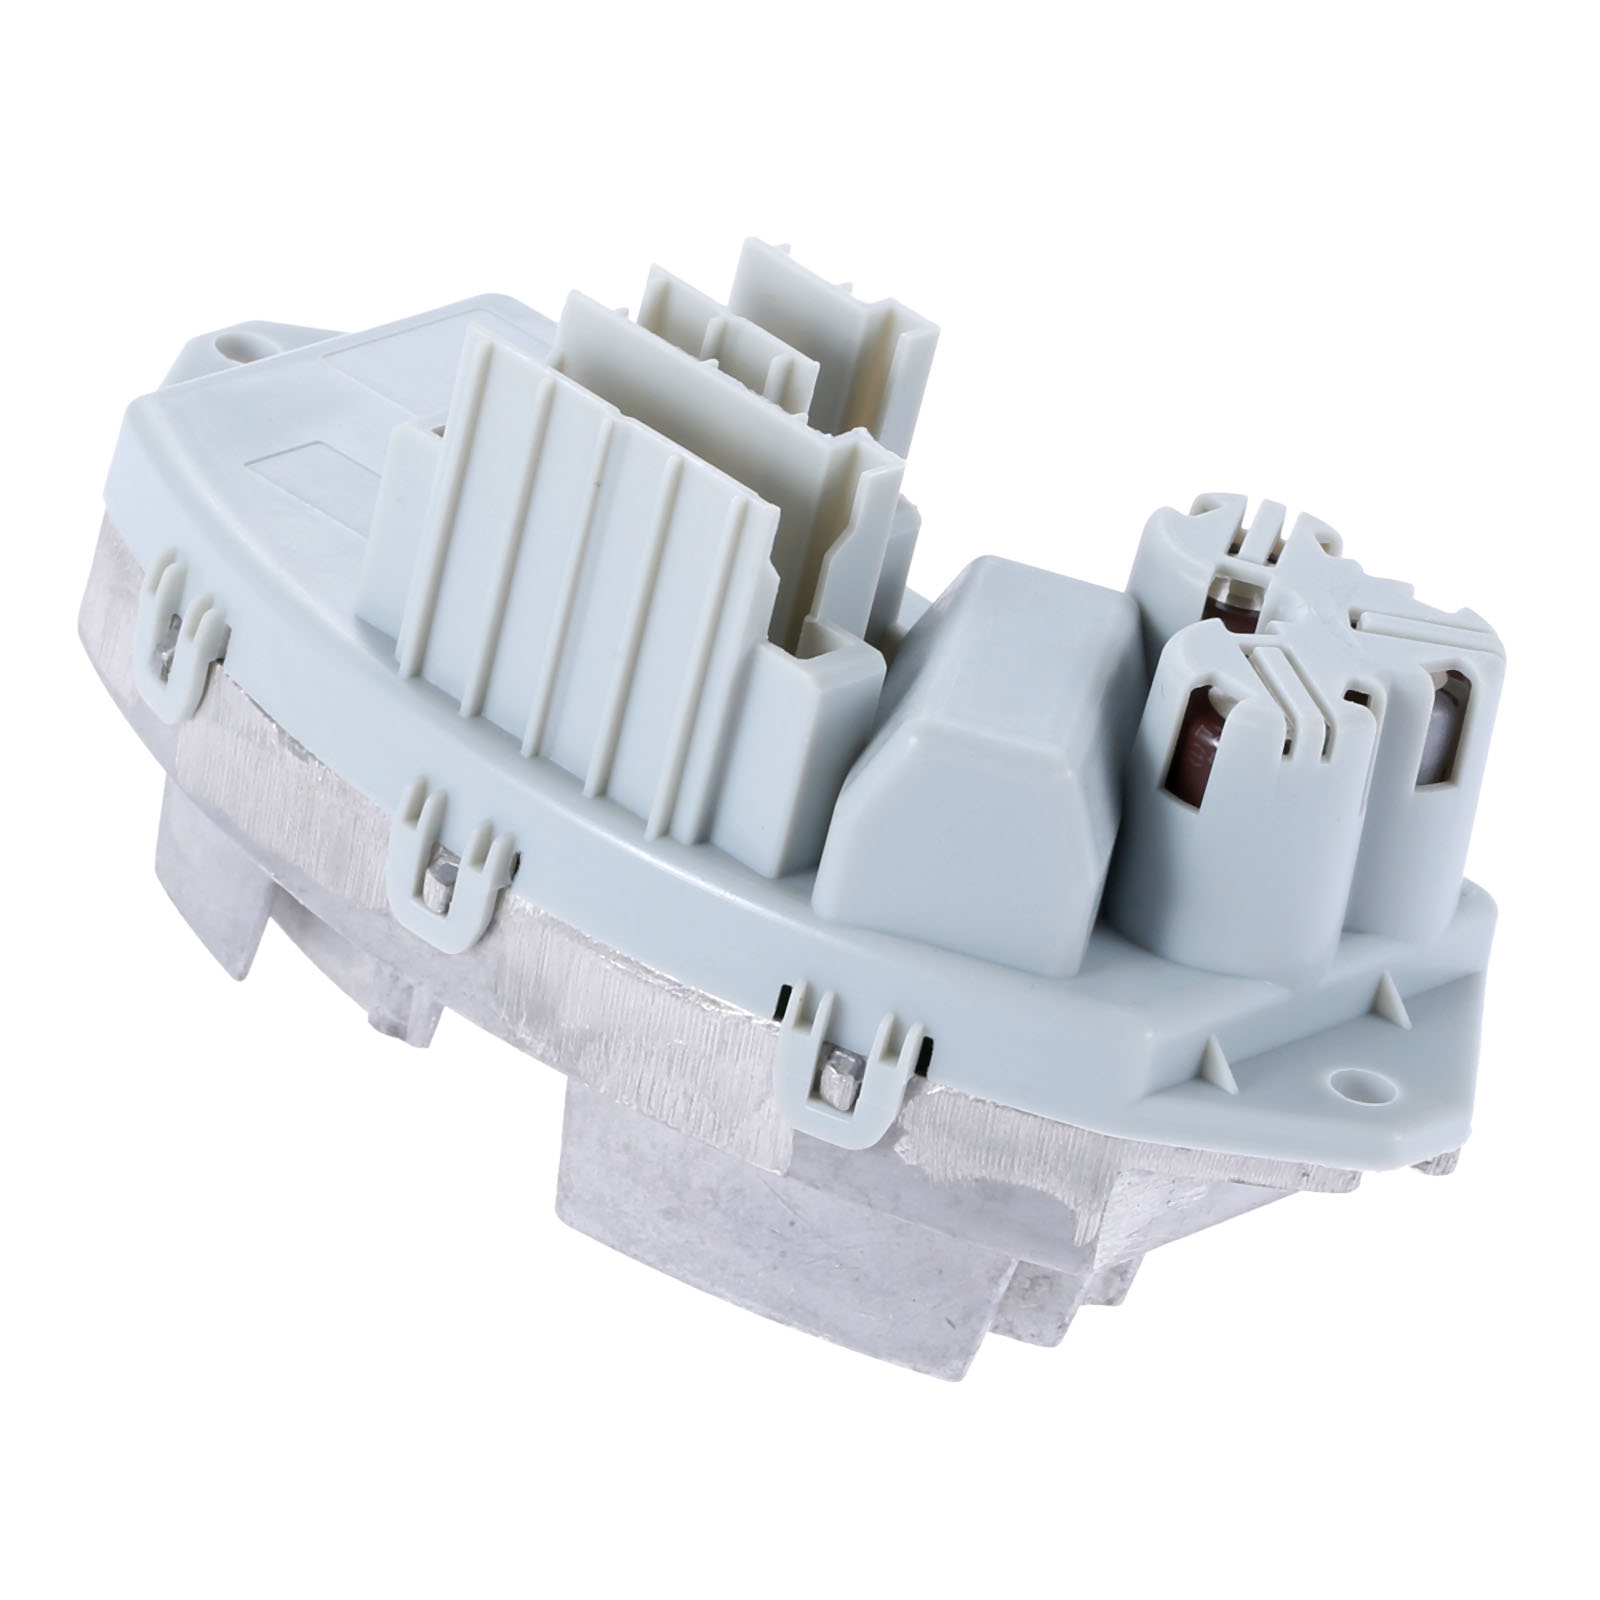 Image 3 - Yetaha 64119146765 New Blower Motor Resistor Regulator For BMW 120I 128I 130I 135I 323I 325CI 325I 328I 330CI 335I X1 X3 X5 X6-in Air-conditioning Installation from Automobiles & Motorcycles